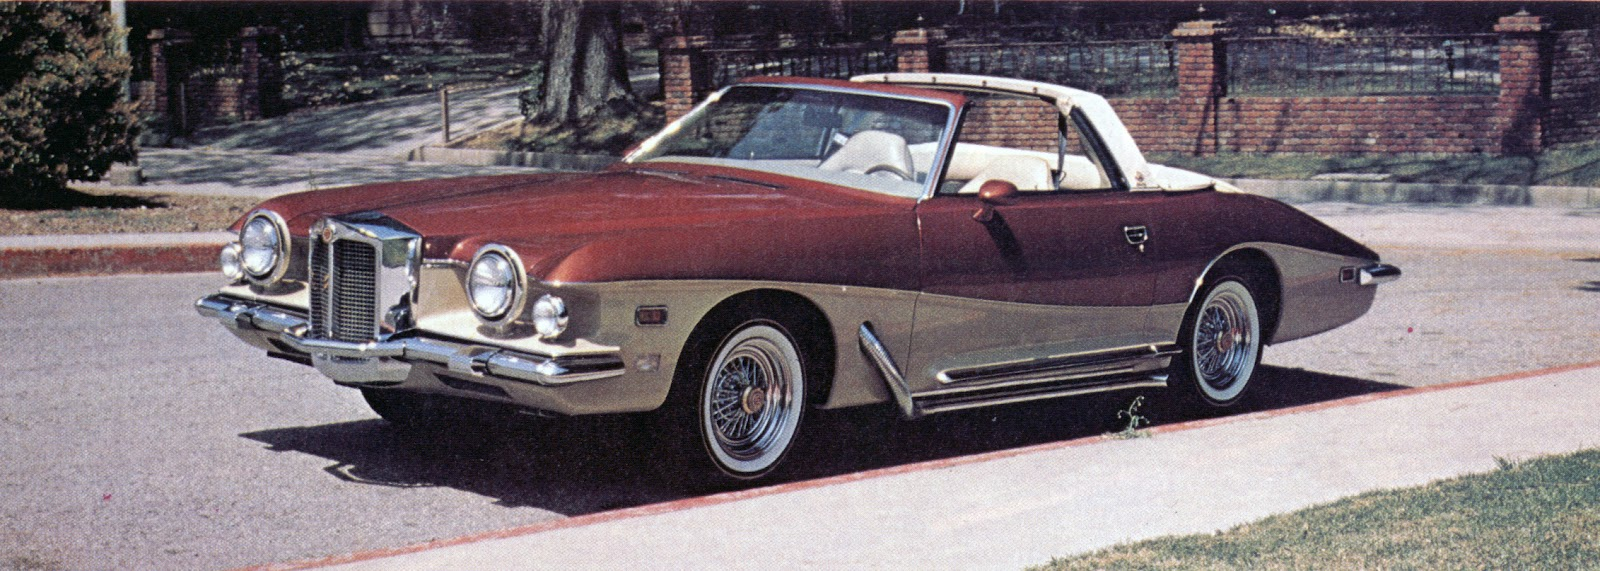 Stutz Blackhawk Convertible